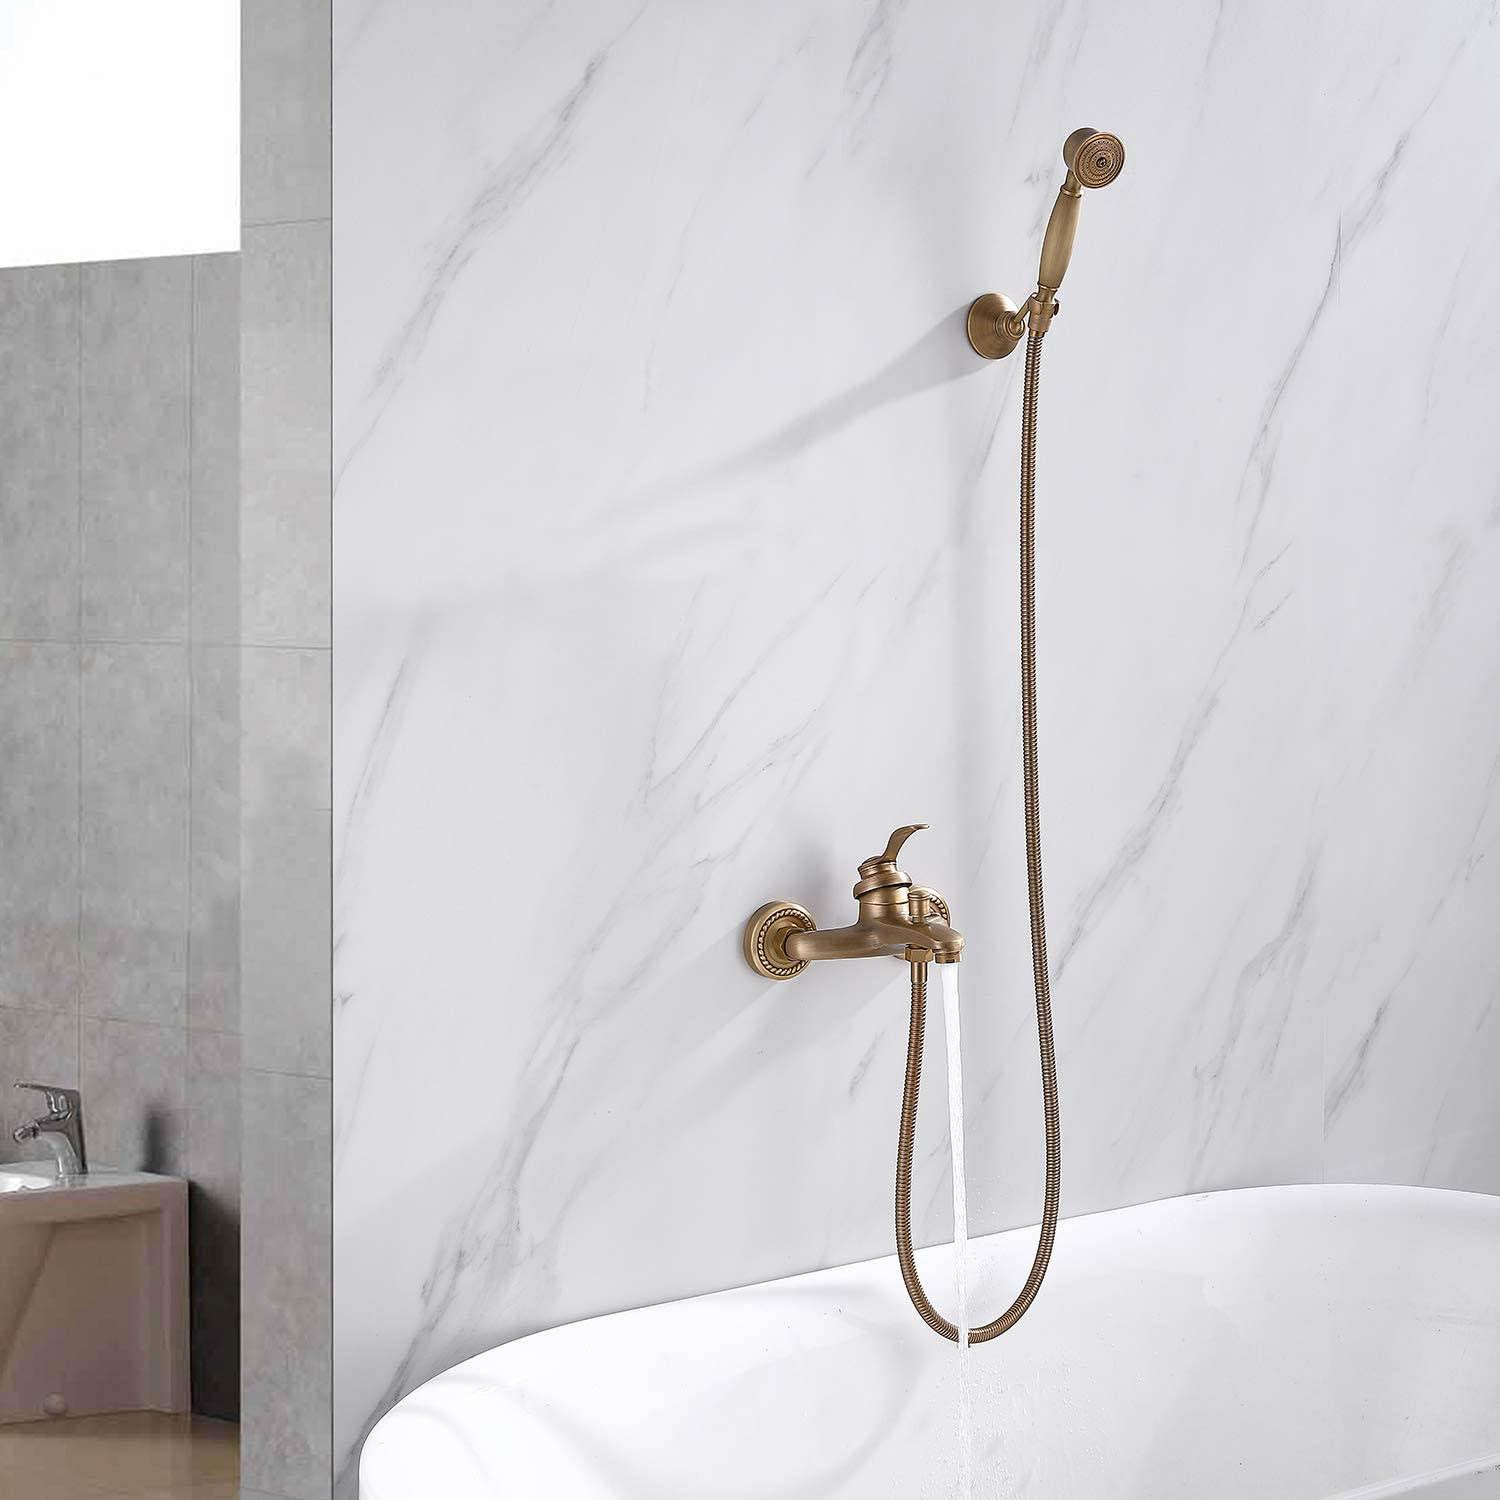 Faucet-and-shower-homelava